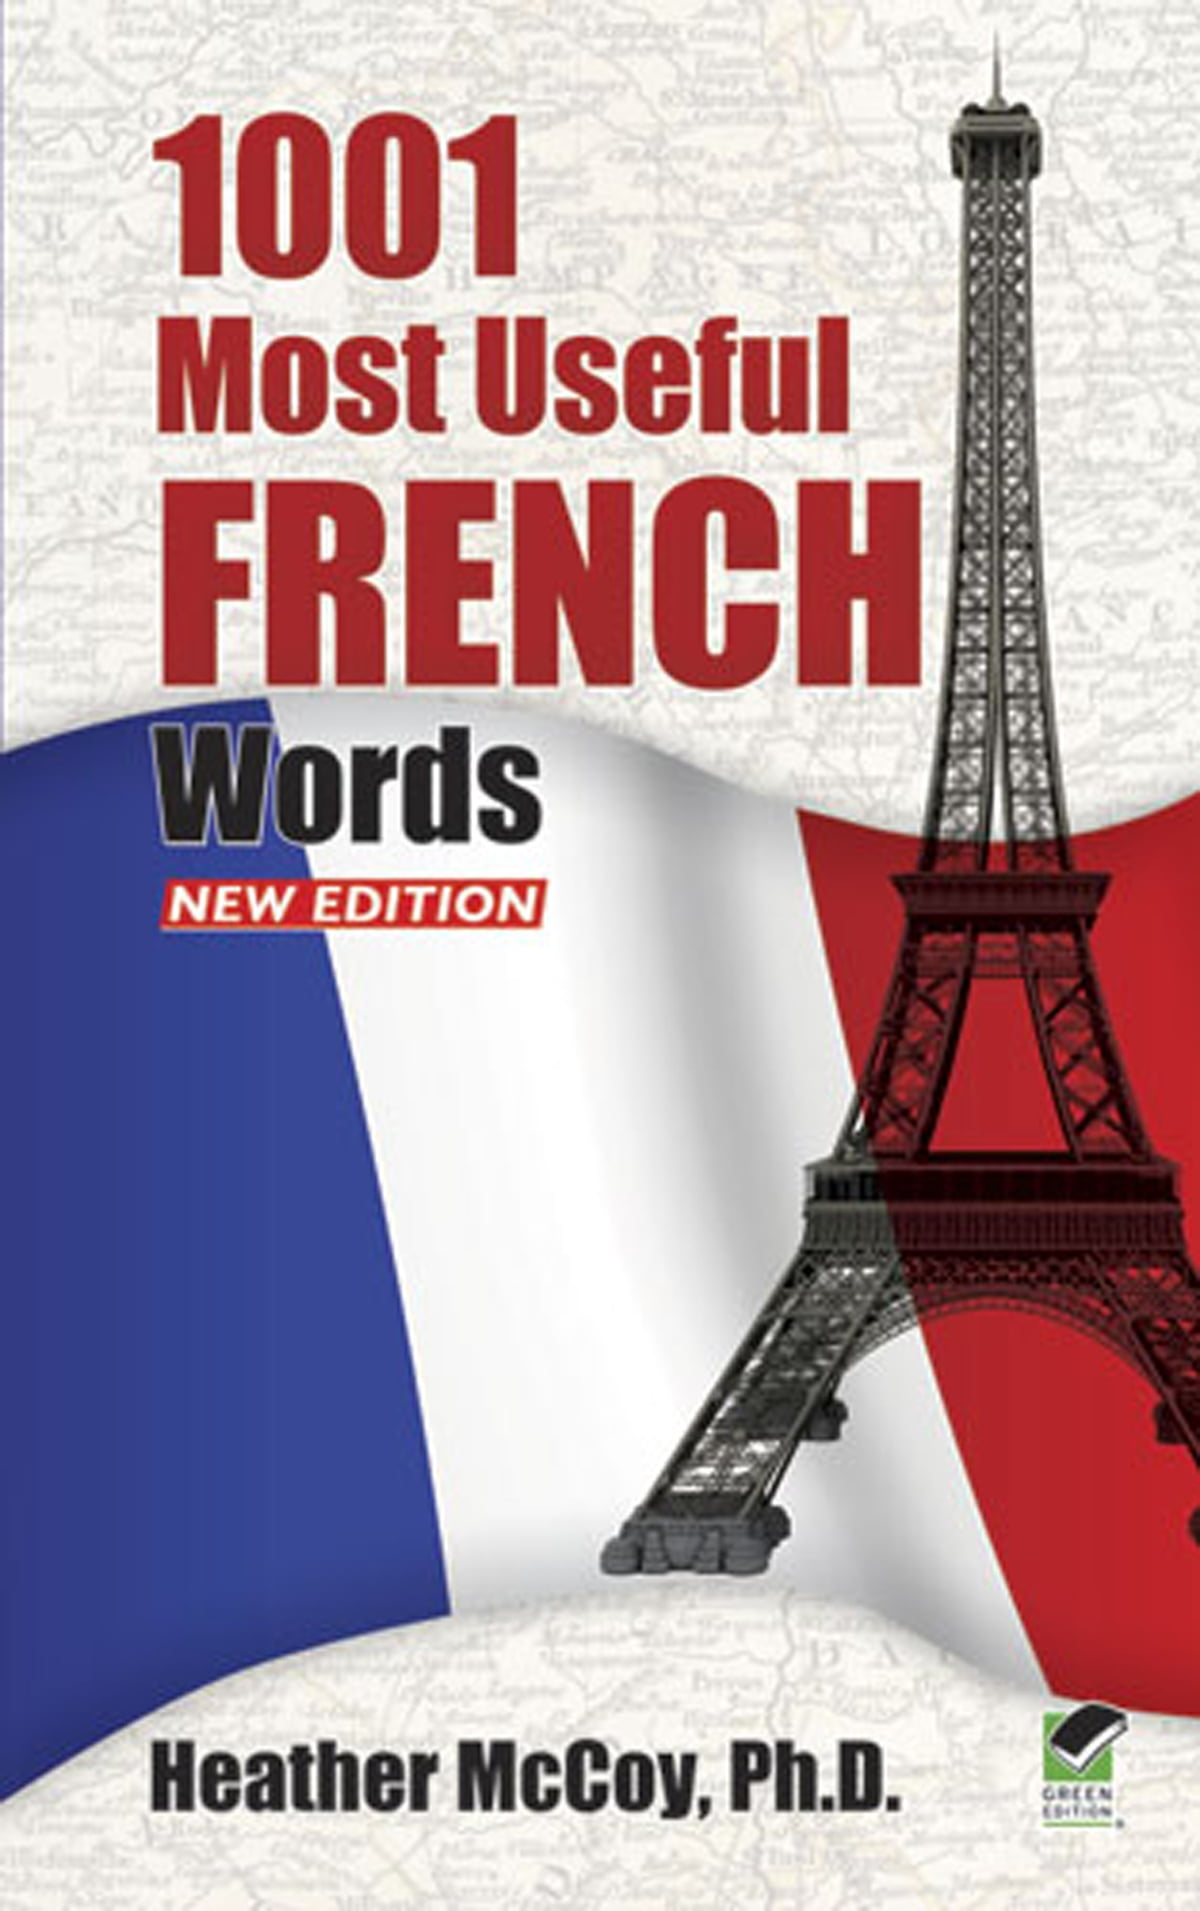 1001 Most Useful French Words NEW EDITION eBook by Heather McCoy -  9780486261089 | Rakuten Kobo